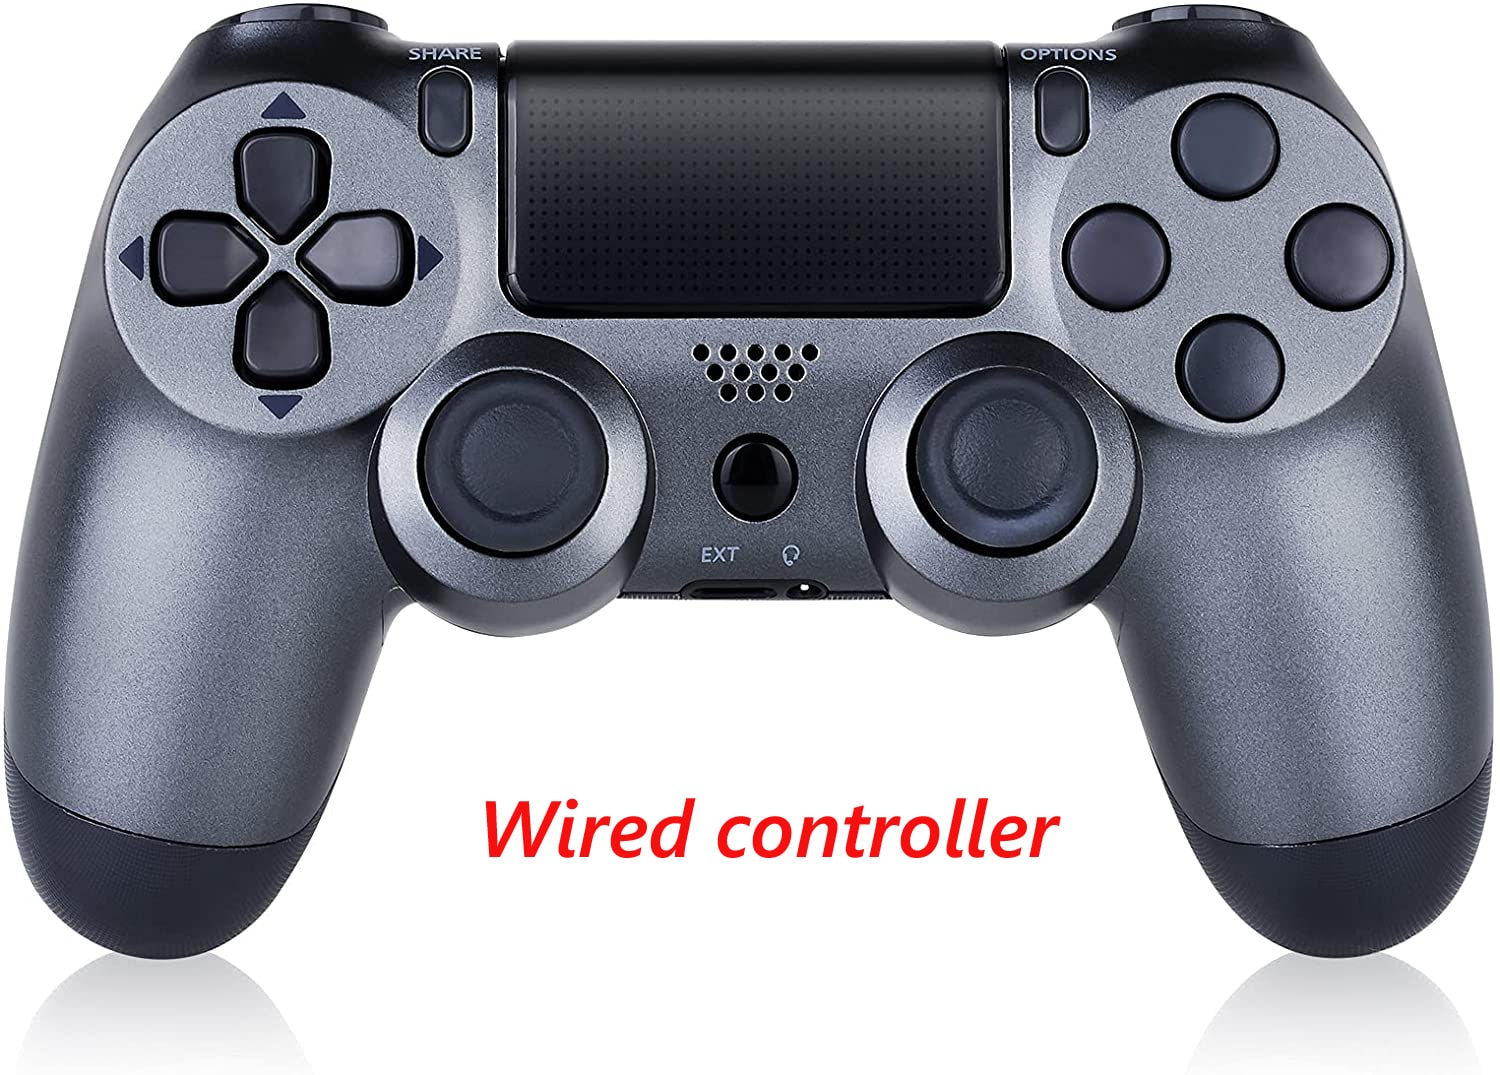 PS4 Wired Controller Dual Shock 4 Gamepad For Sony Playstation 4 Steel Black - 1